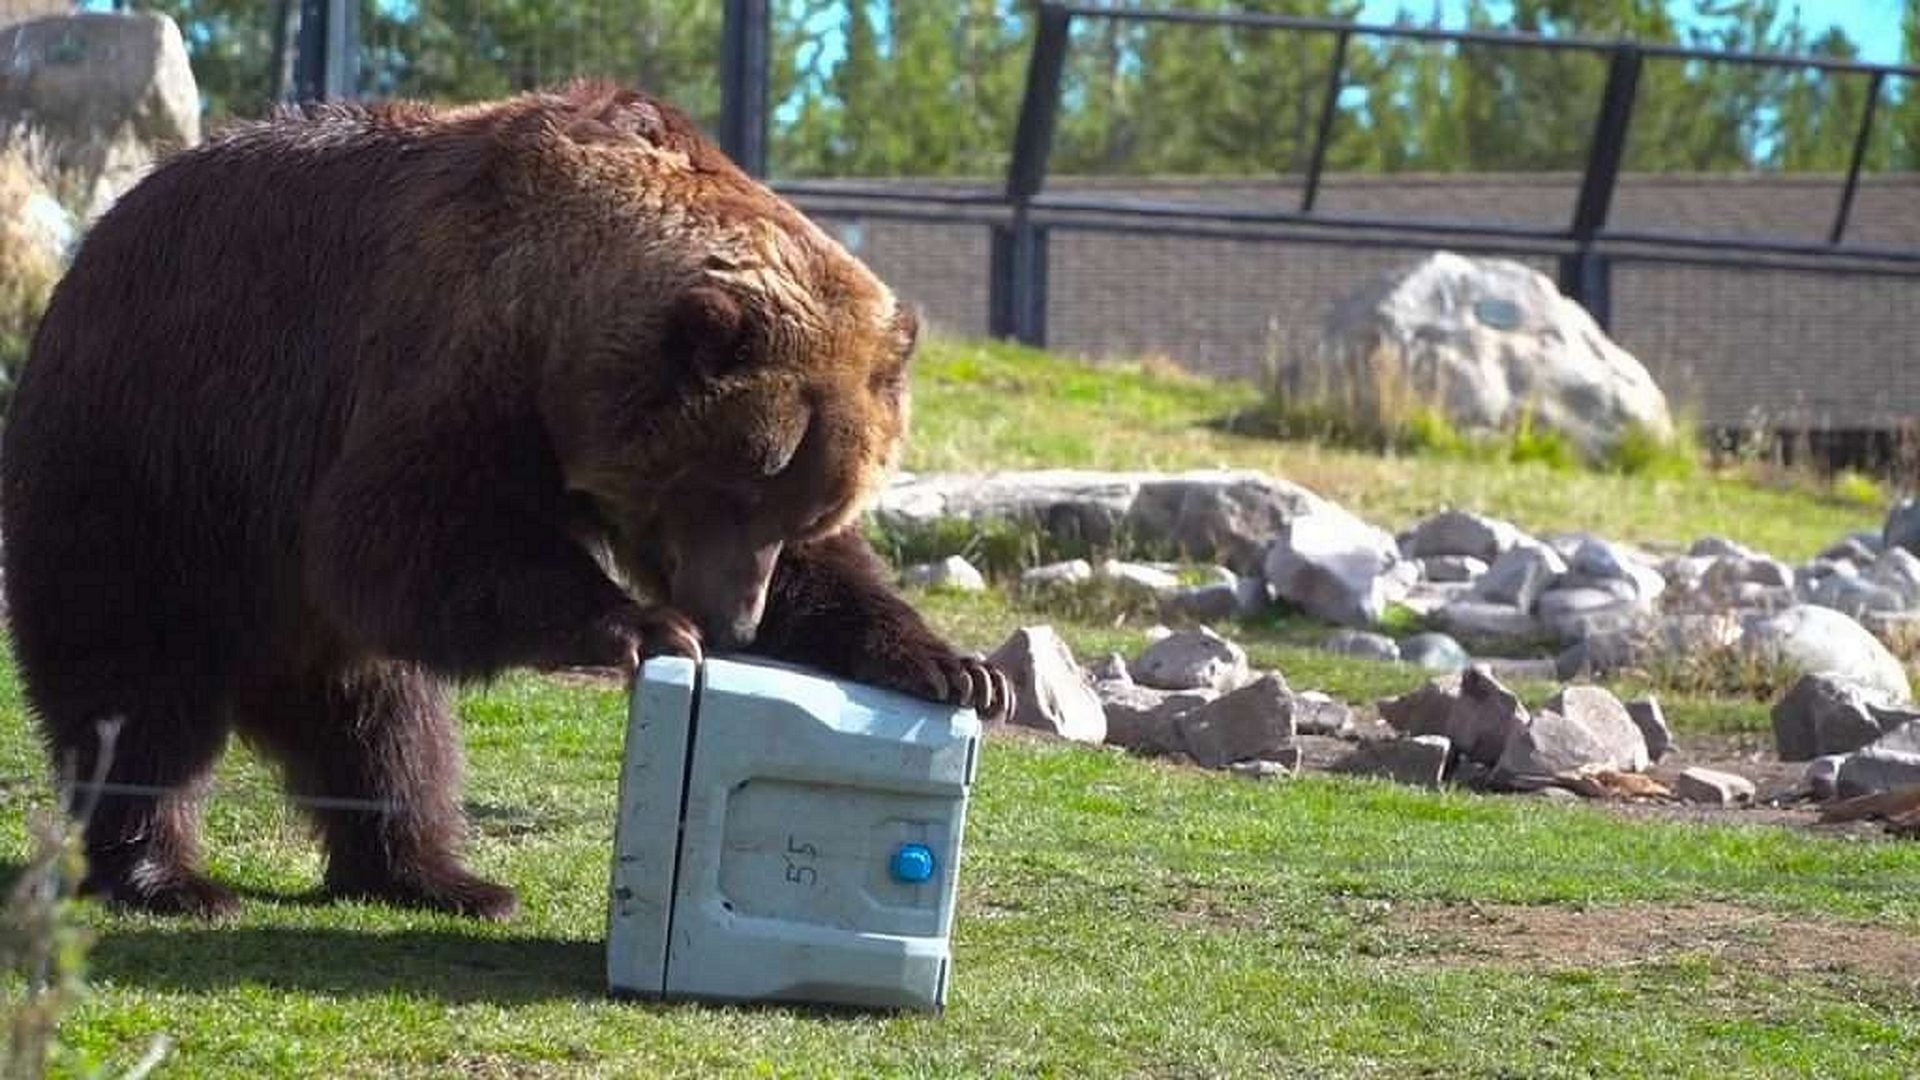 A Camping Cooler Being Tested by a Bear